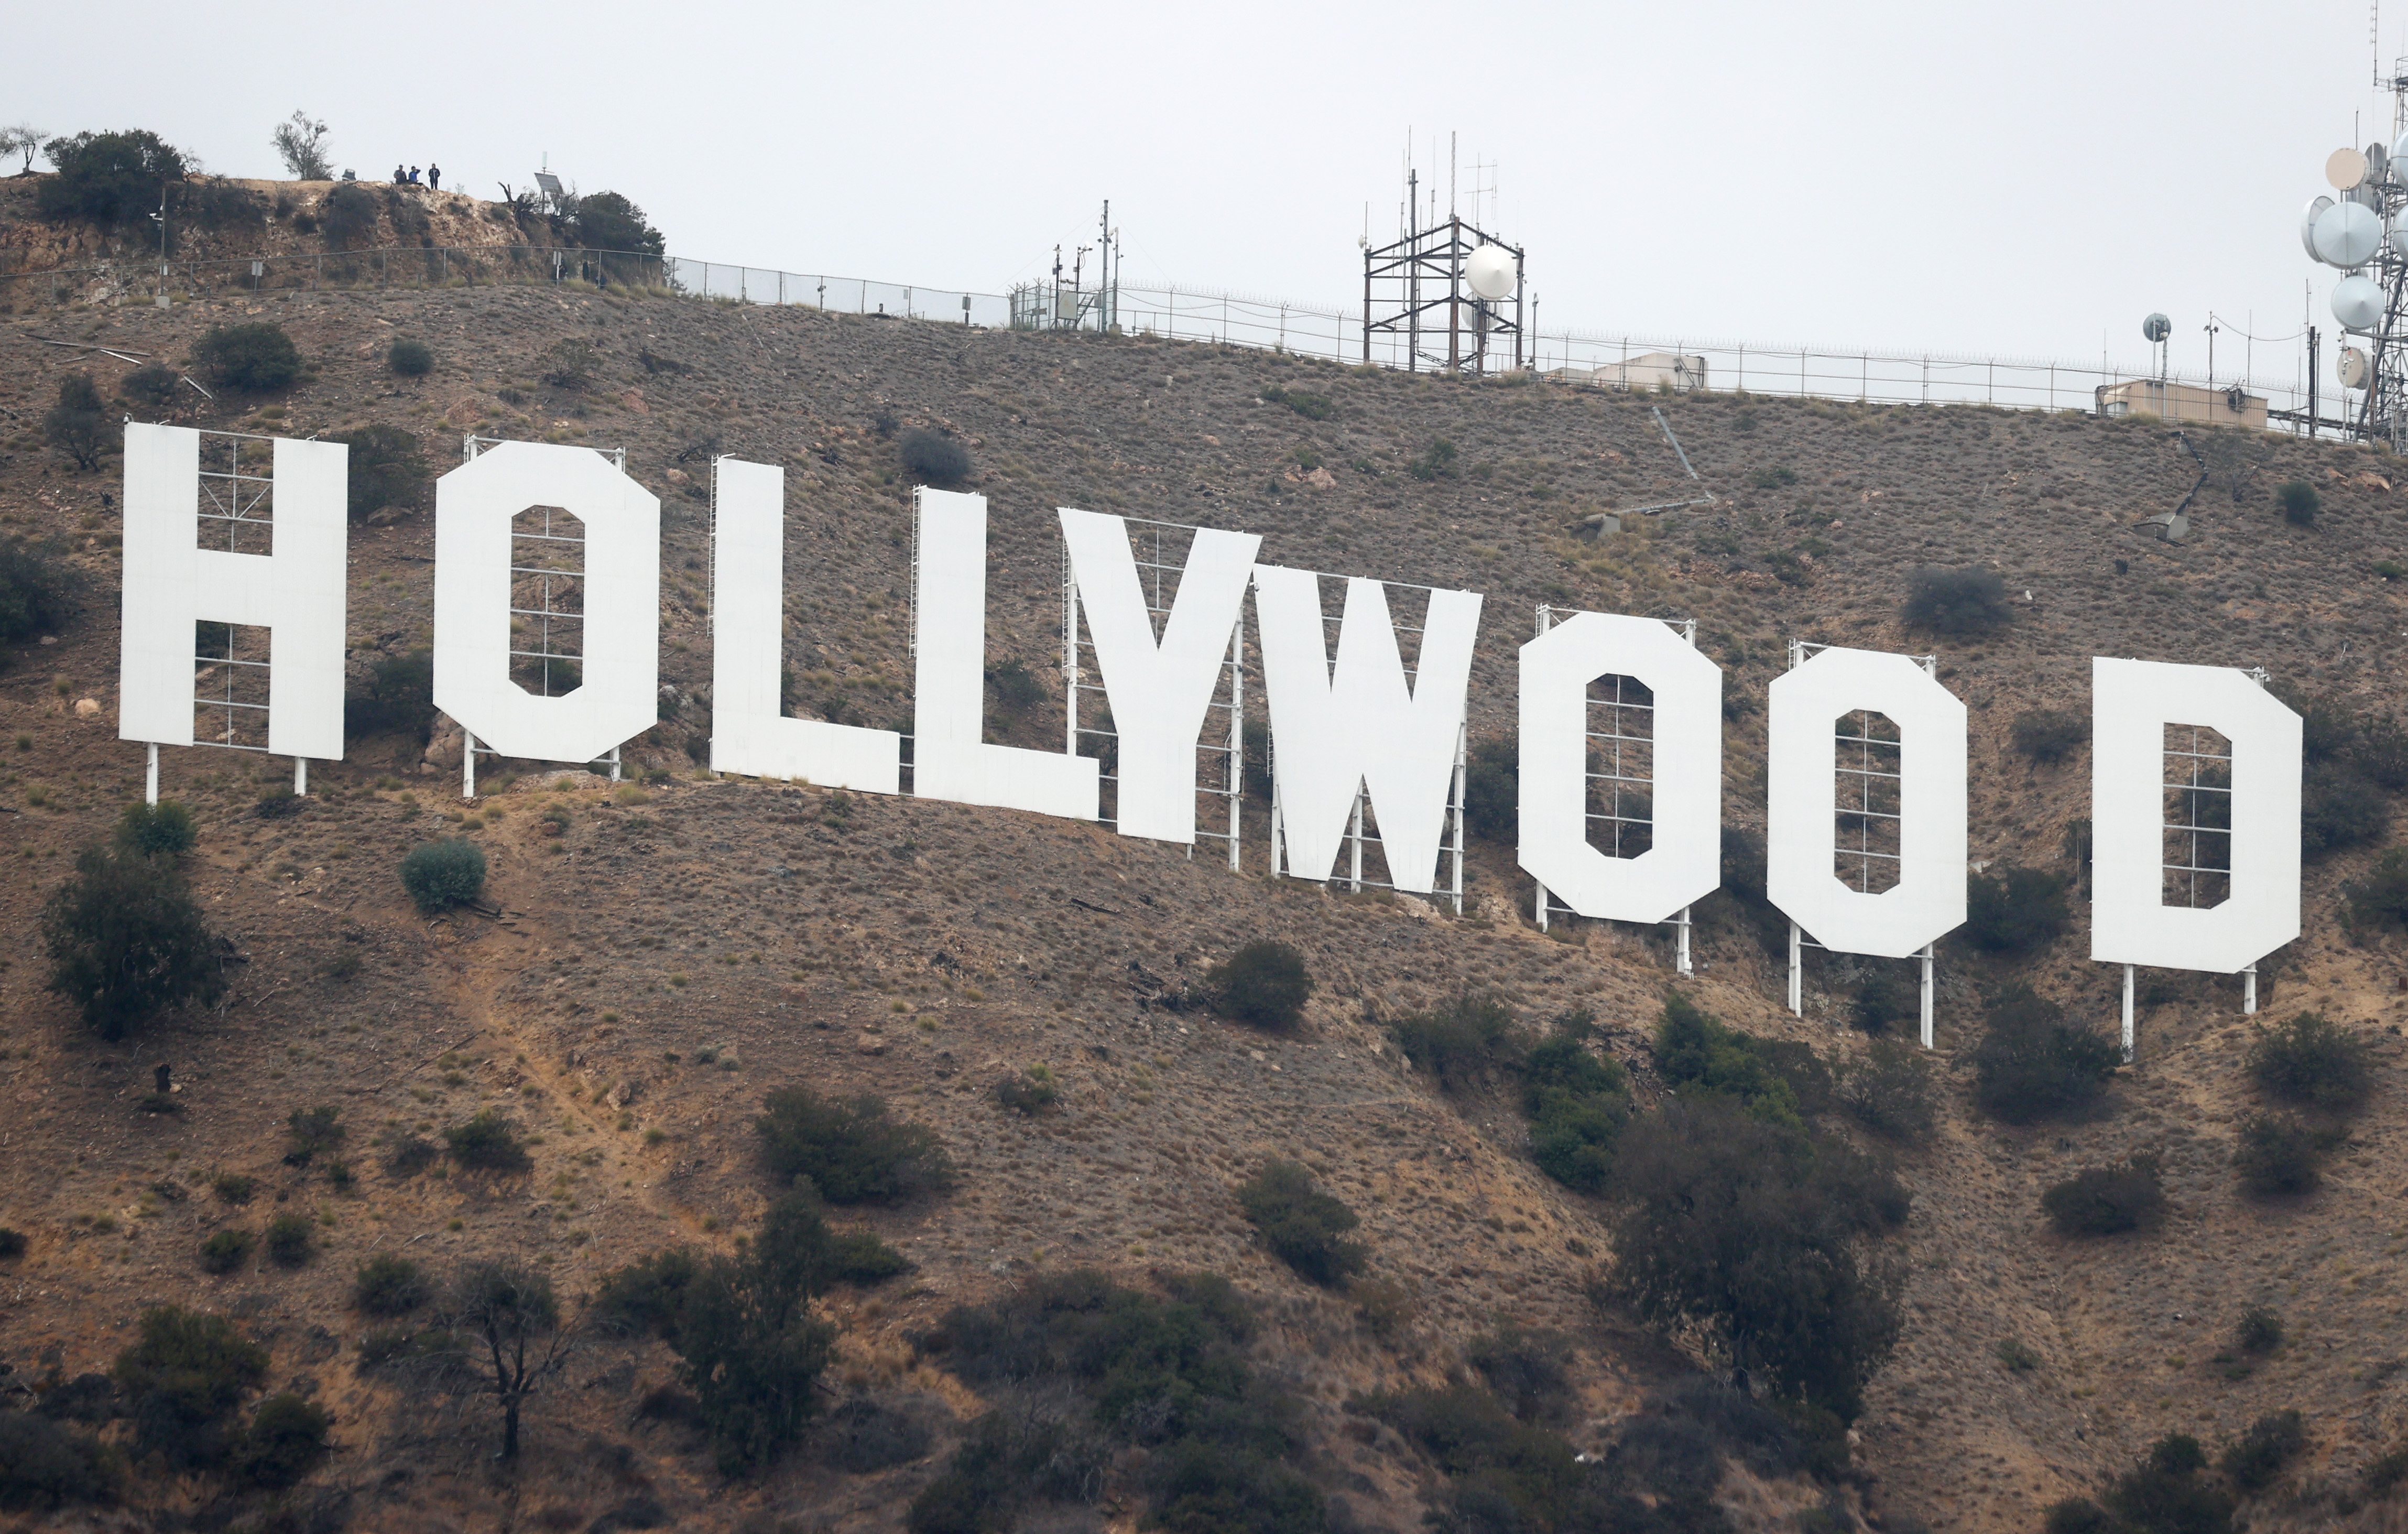 Film and TV productions in Hollywood and other locations will go on uninterrupted after a contract agreement kept behind-the-scenes workers on the job.